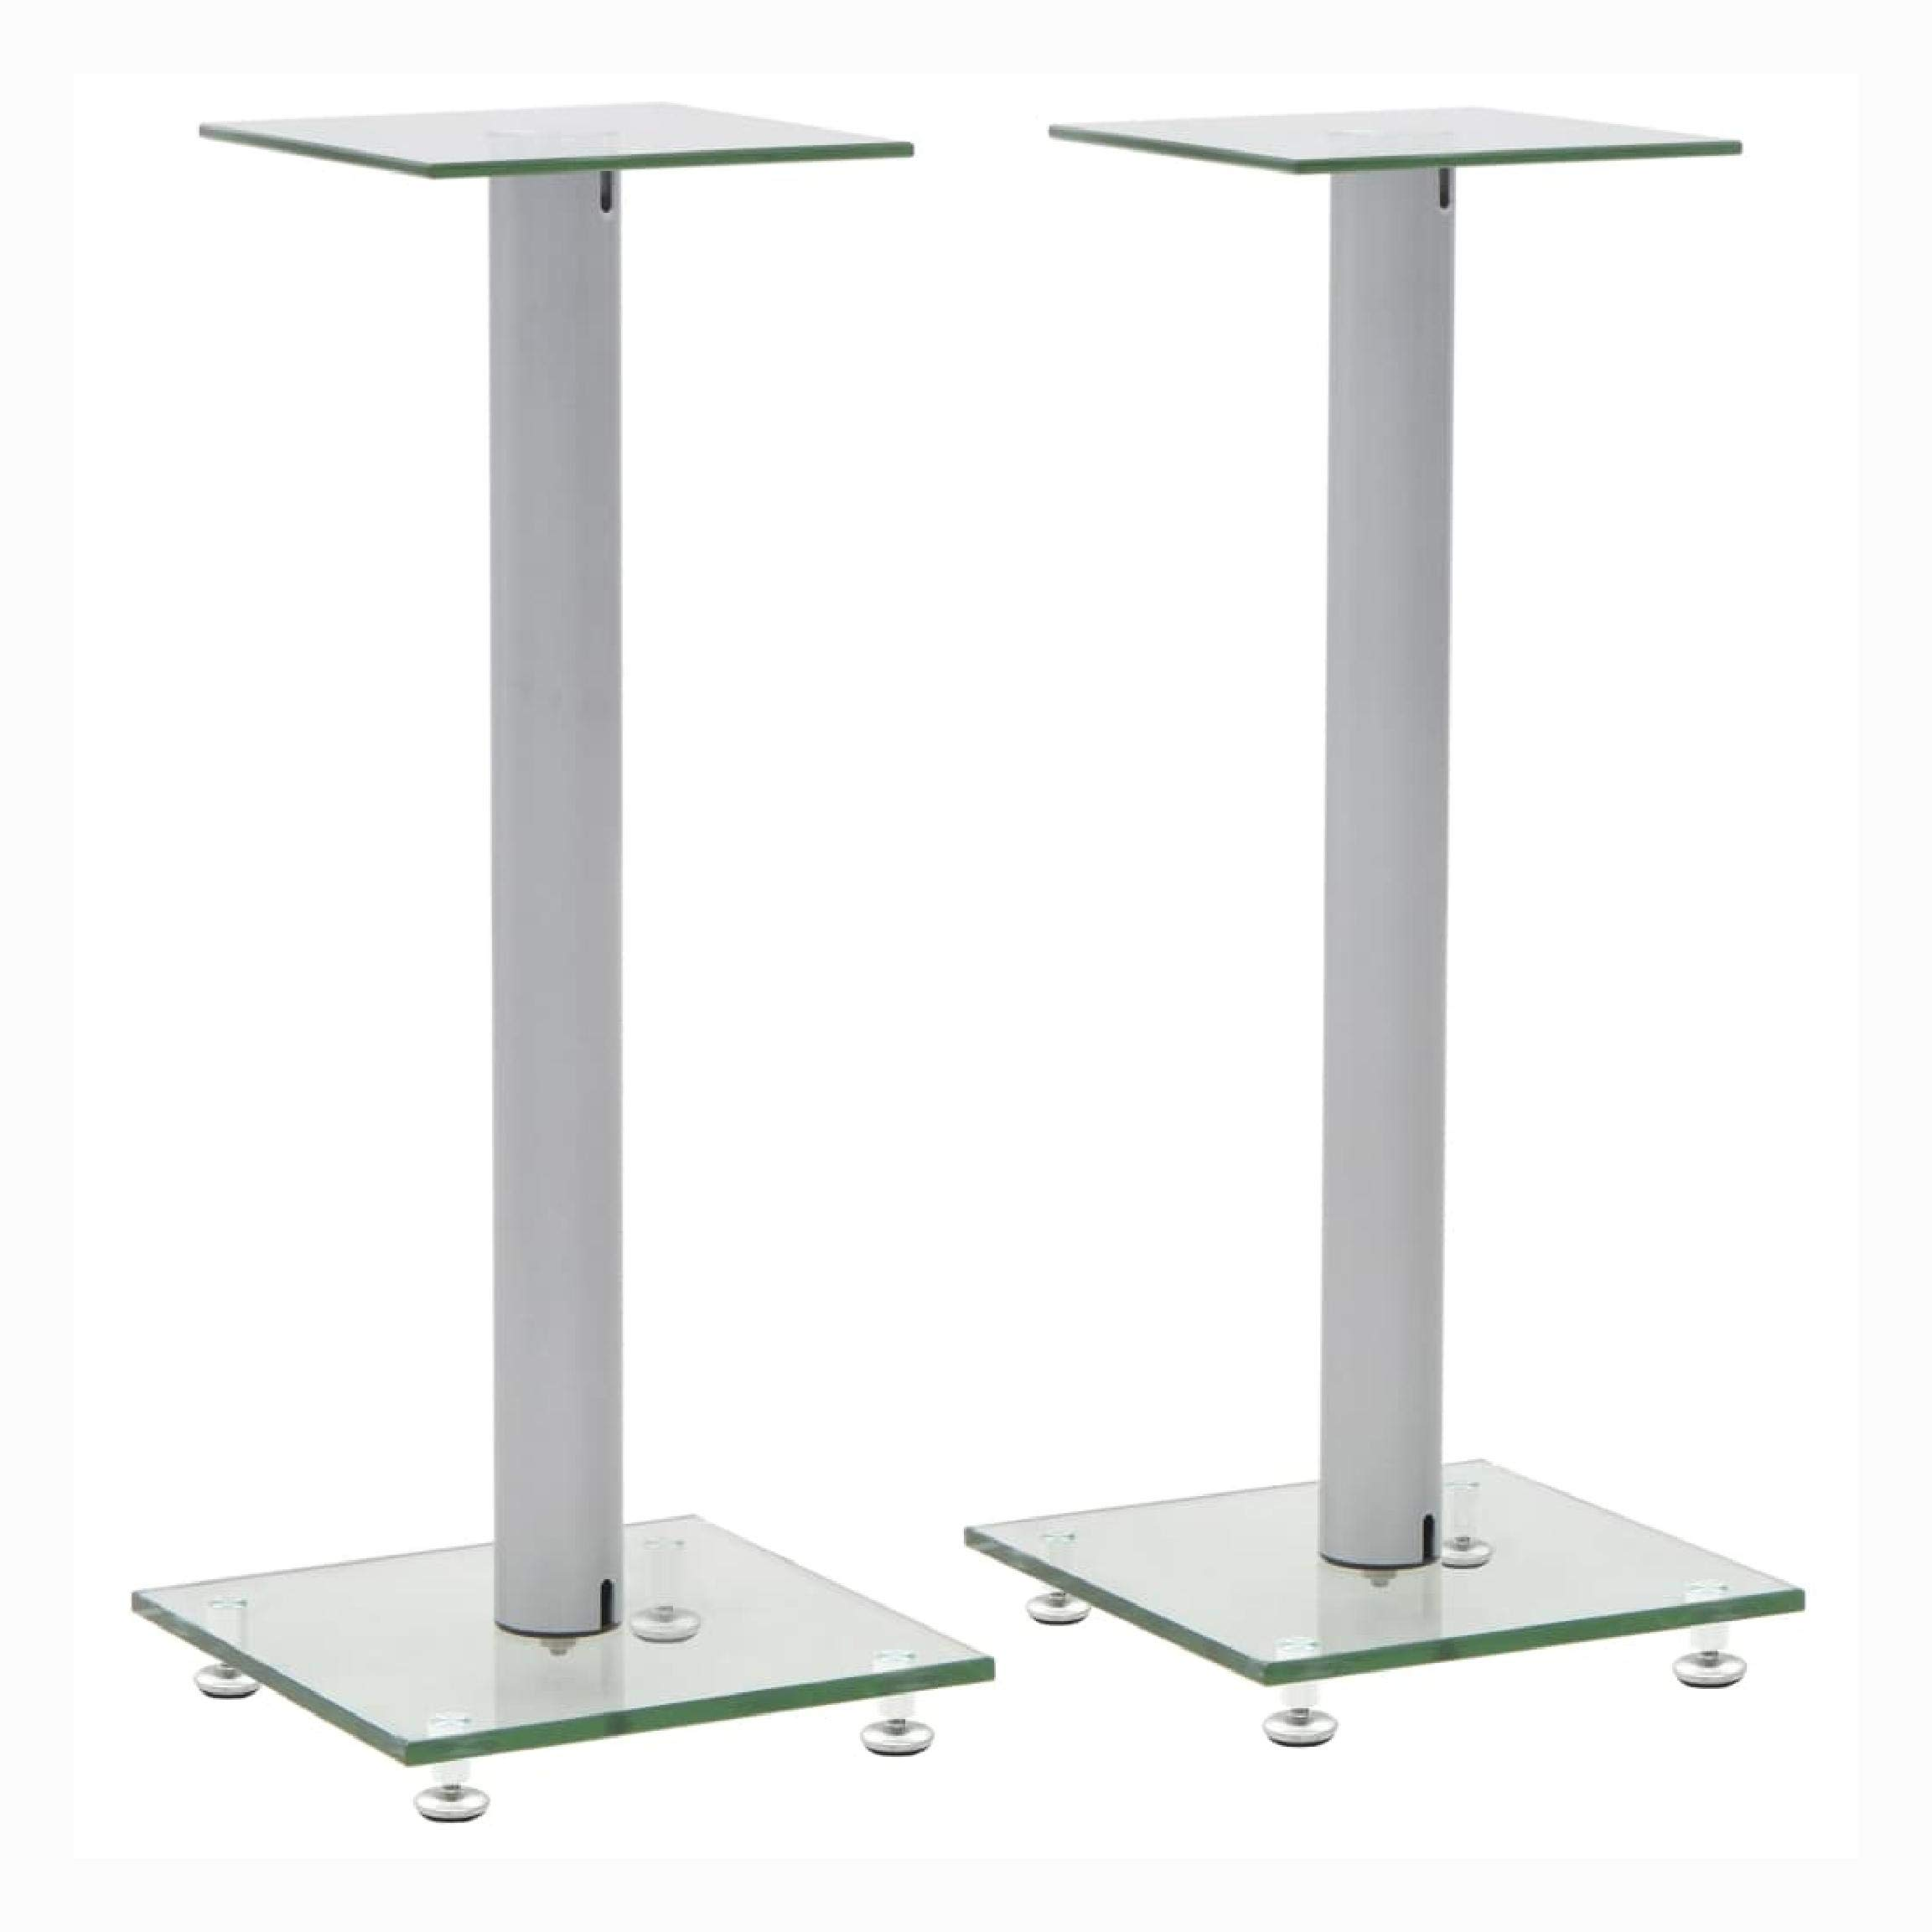 HomyDelight Speaker Stand & Mount, Speaker Stands 2 pcs Tempered Glass 1 Pillar Design Silver by HomyDelight